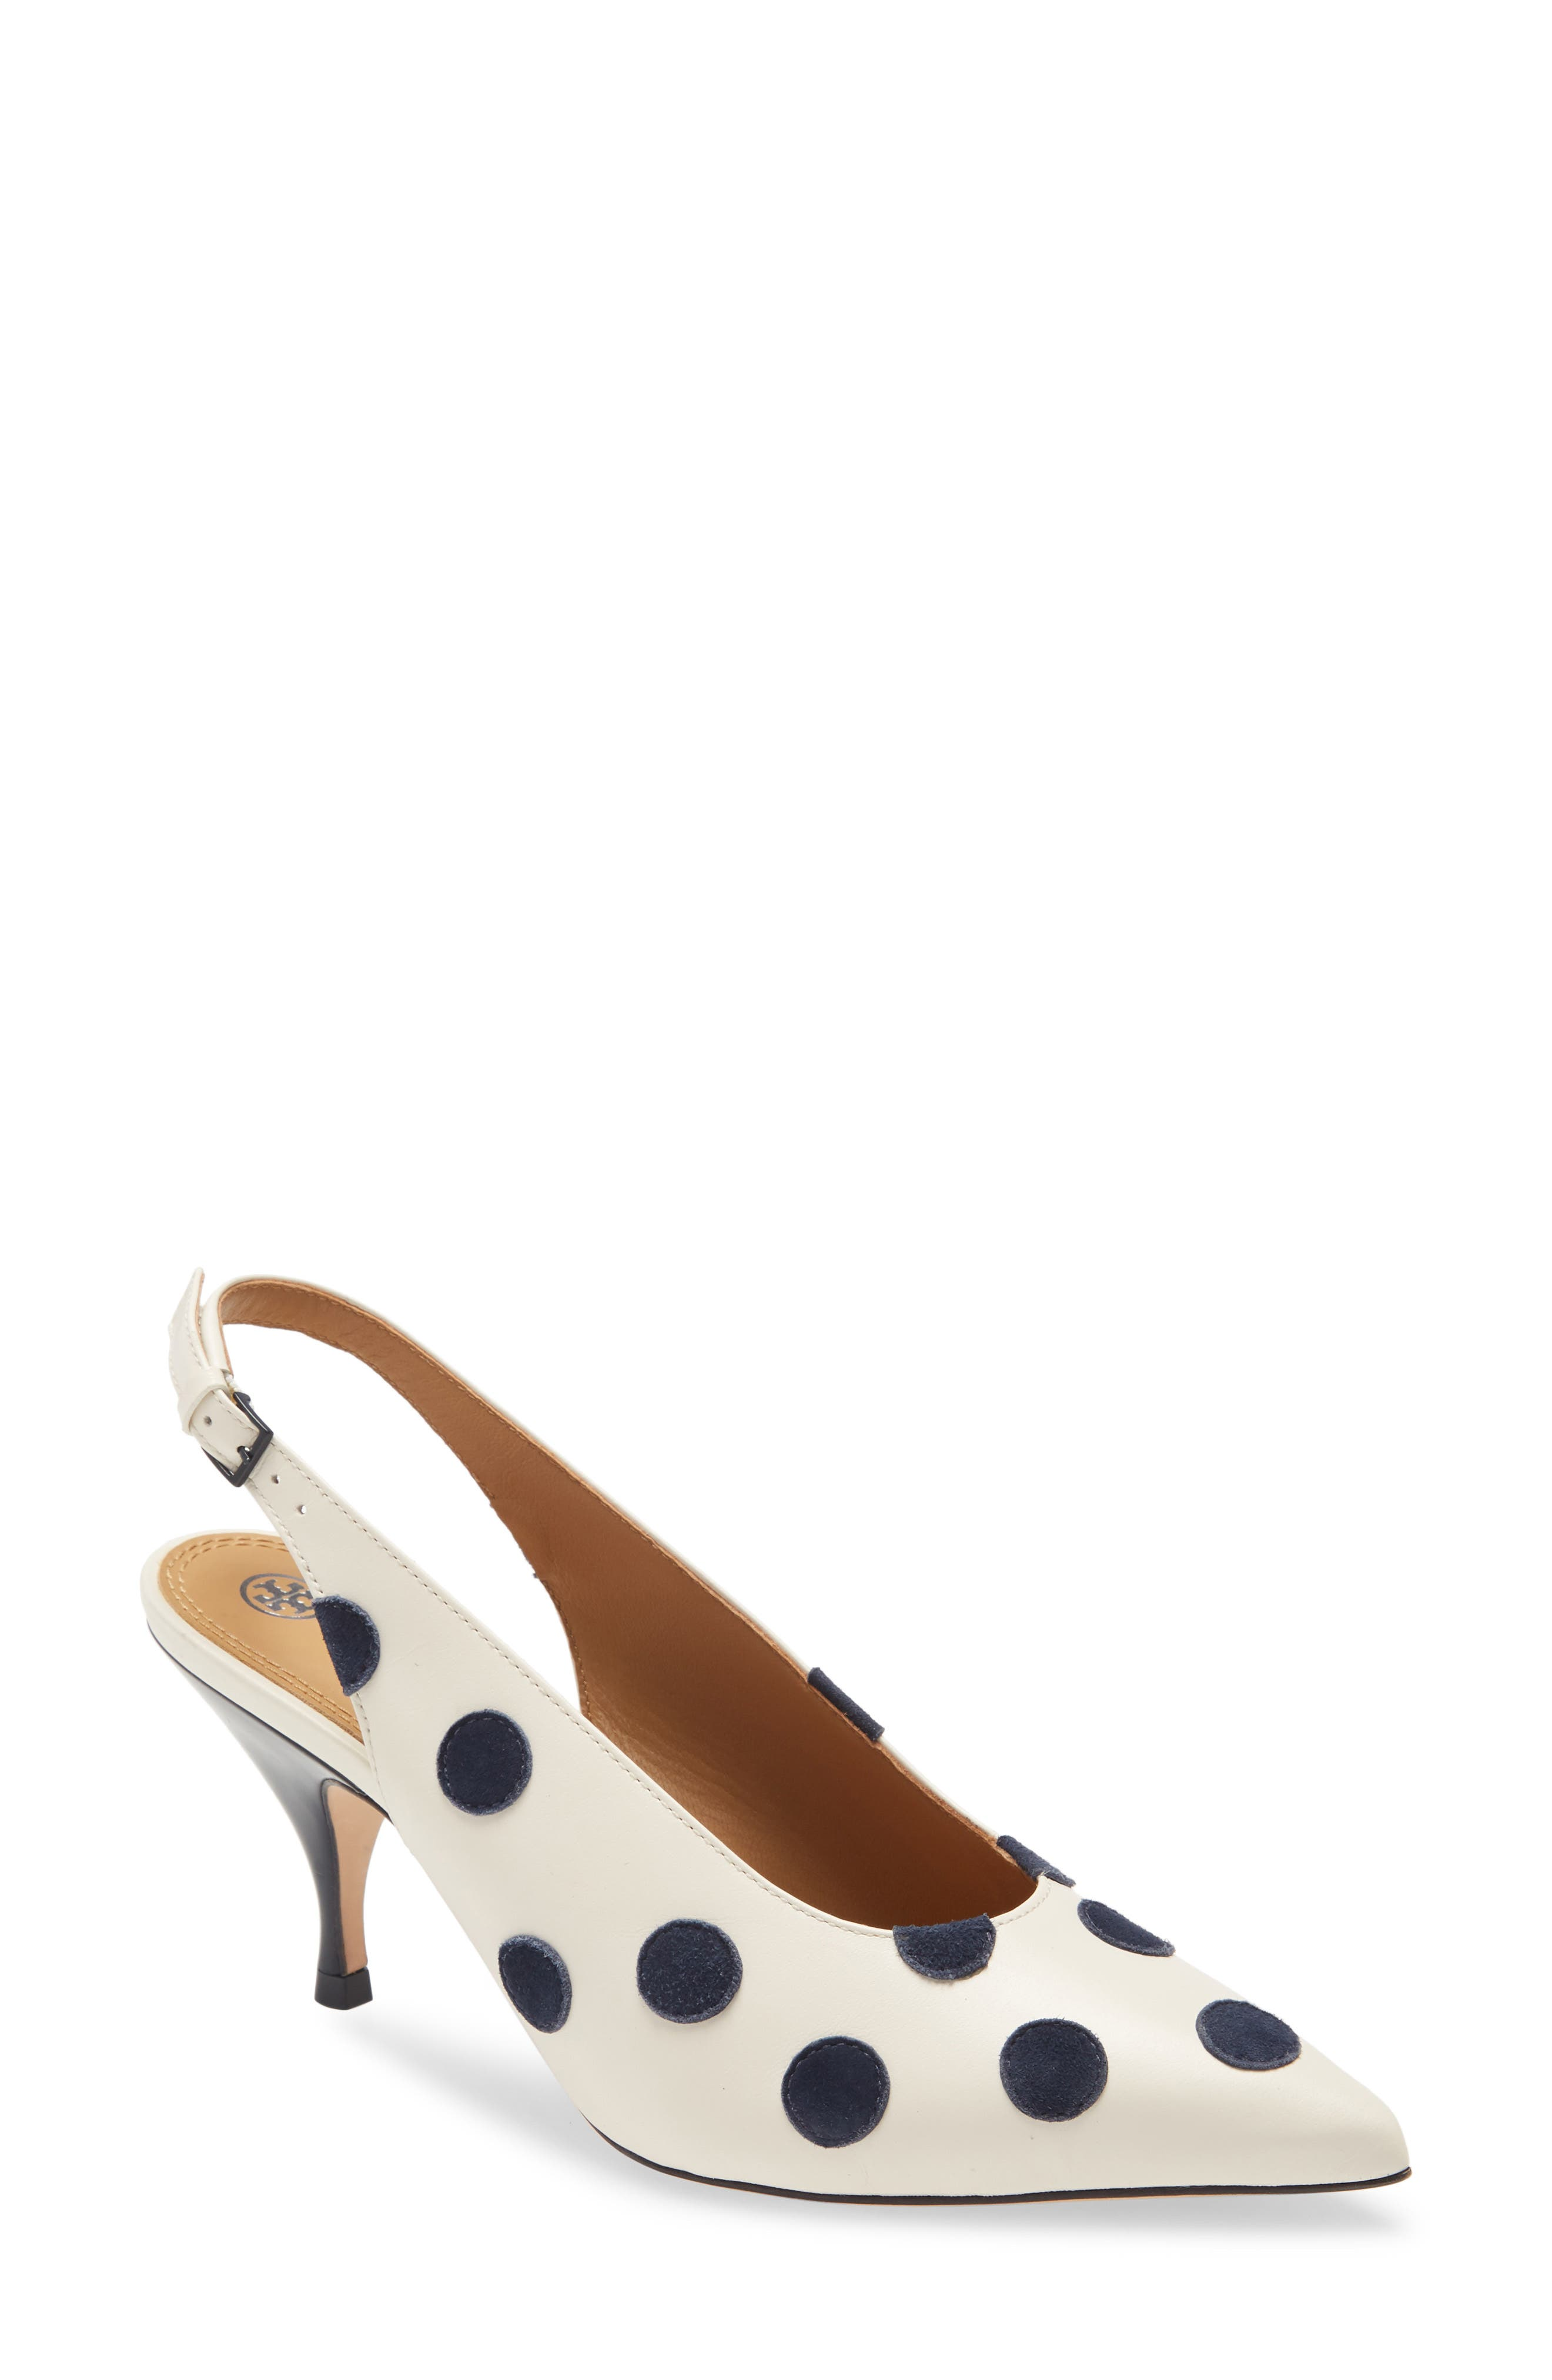 A leather slingback takes inspiration from silhouettes from the 1940s with a higher vamp, pointed toe and a low, tapered heel. Style Name: Tory Burch Slingback Pump (Women). Style Number: 6054302. Available in stores.